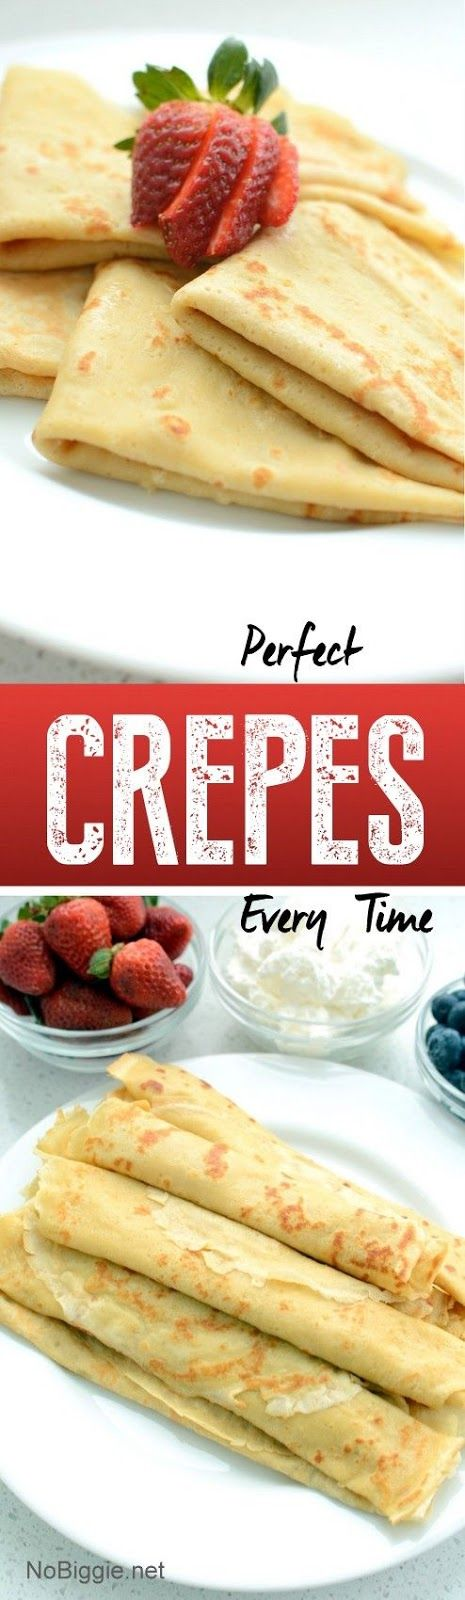 This recipes is incredible easy and impressive. Every single crepe turned out! I have been making a lot of spinach/goat cheese crepes. Pour...